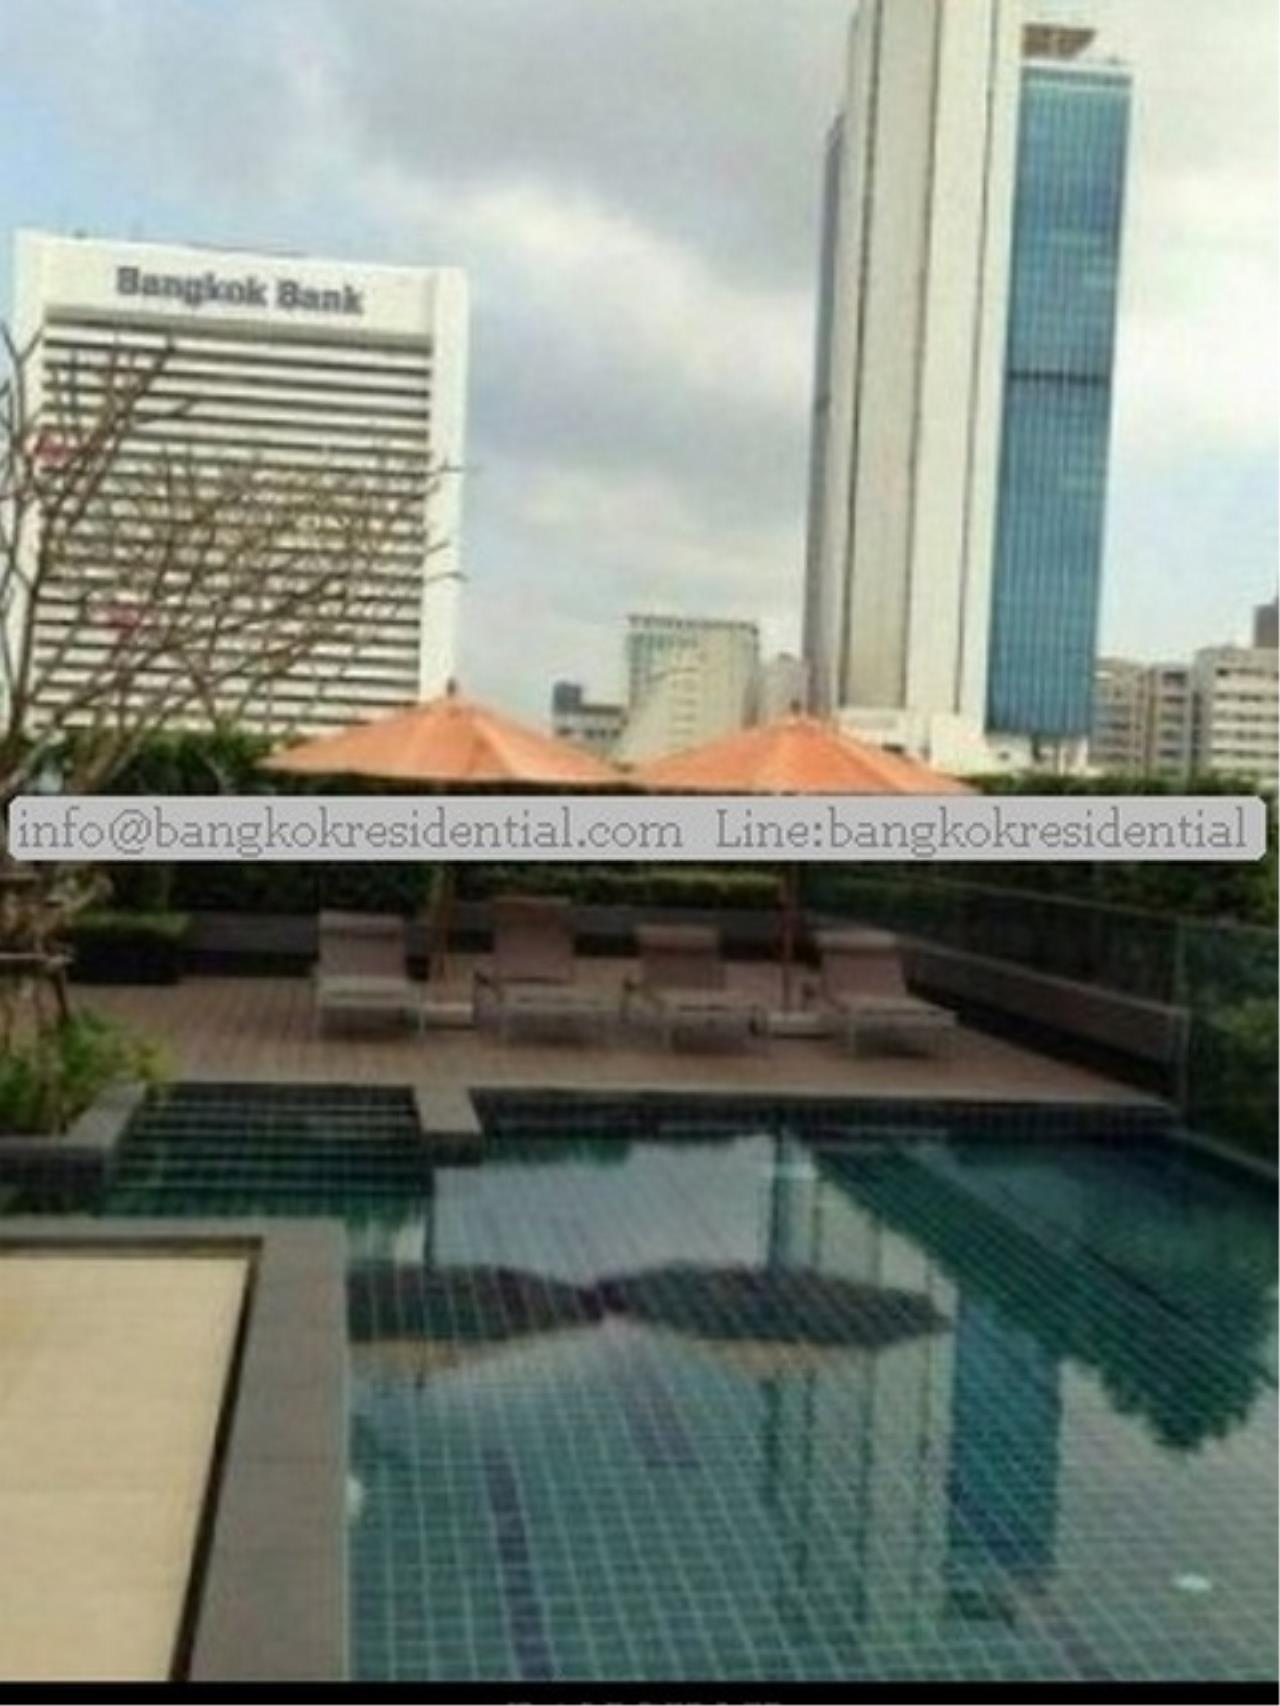 Bangkok Residential Agency's 2BR Collezio Sathorn-Pipat For Rent (BR3338CD) 3